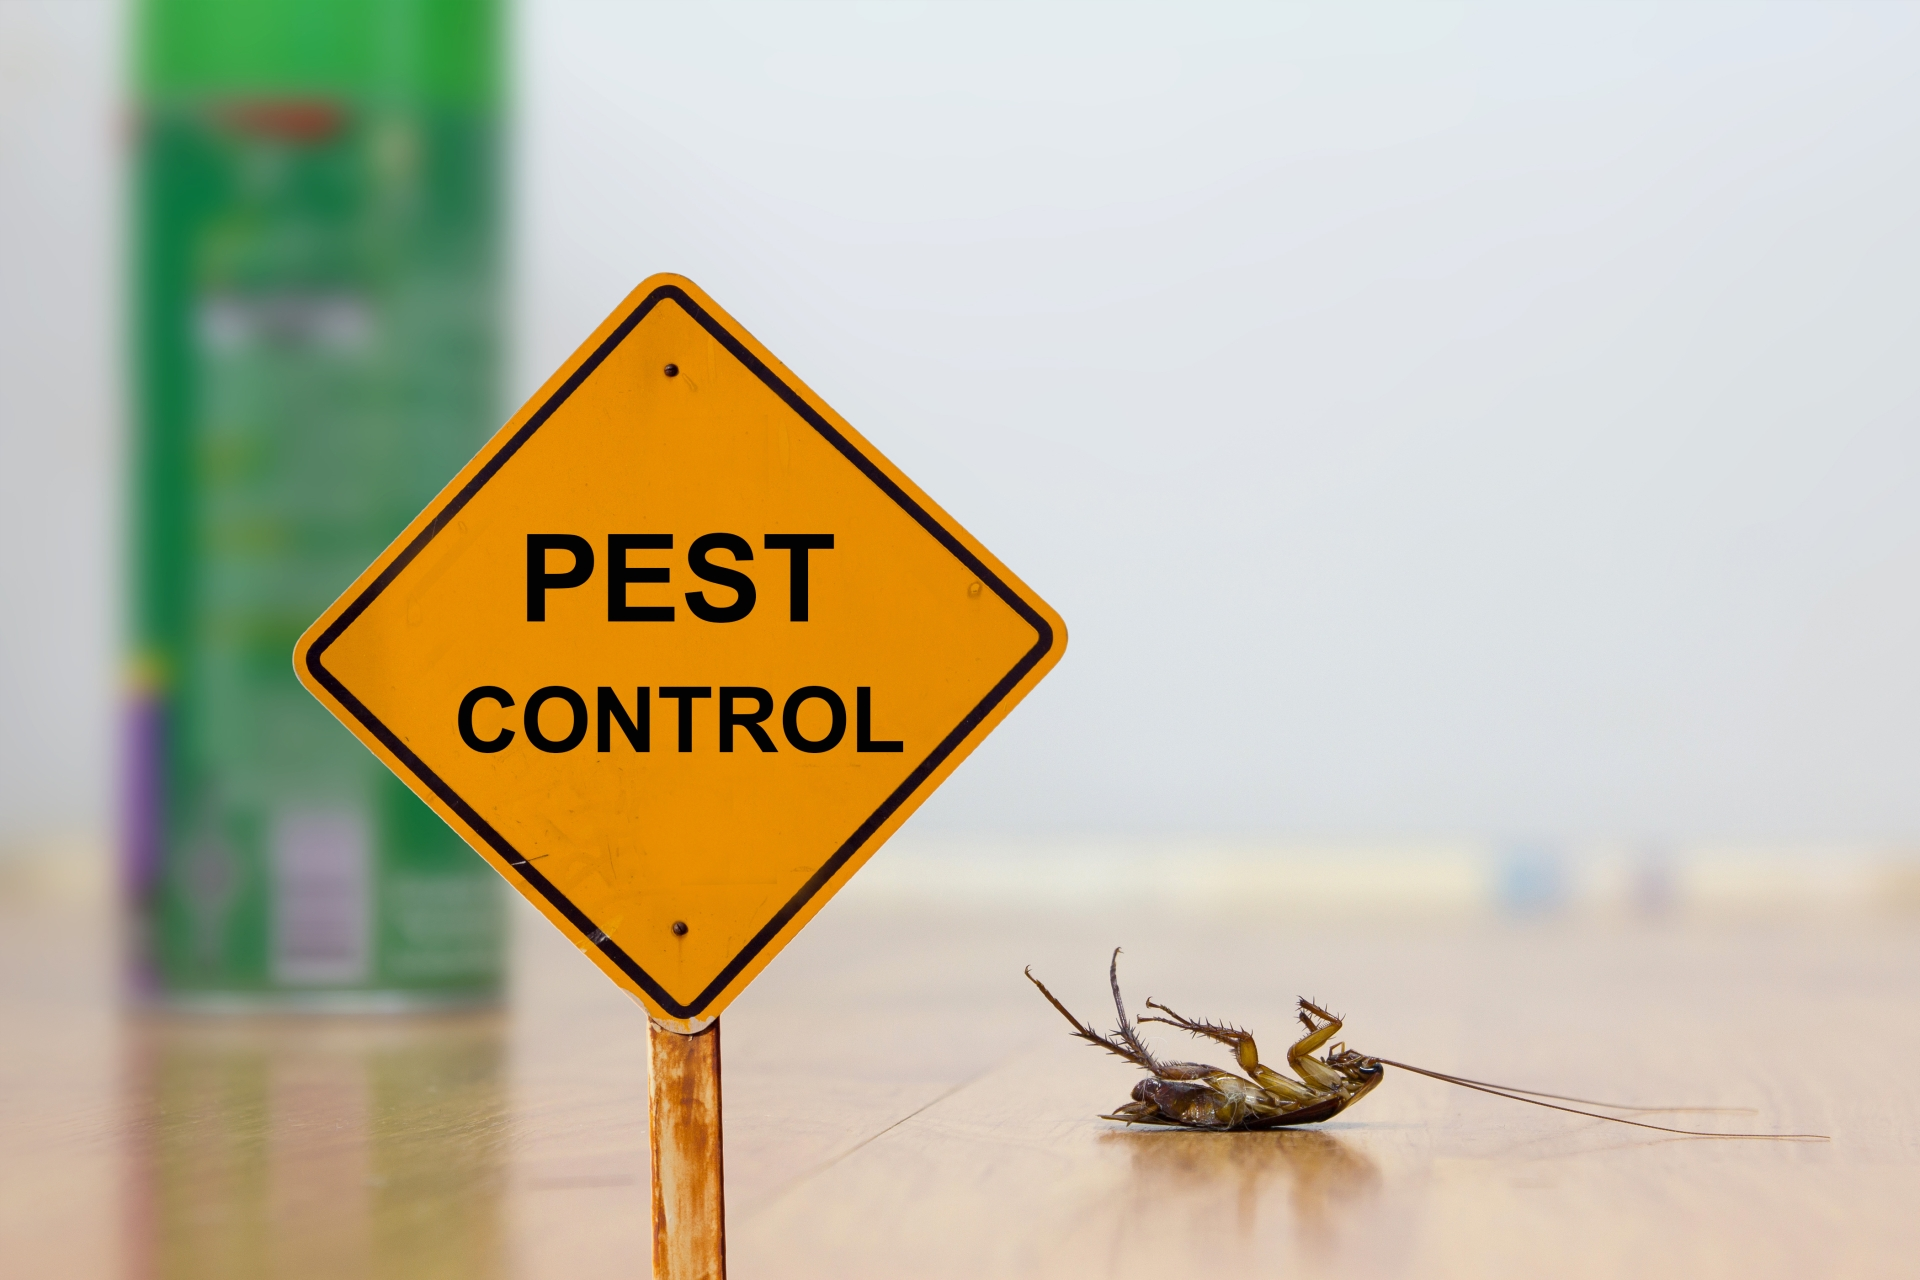 24 Hour Pest Control, Pest Control in Highbury, N5. Call Now 020 8166 9746